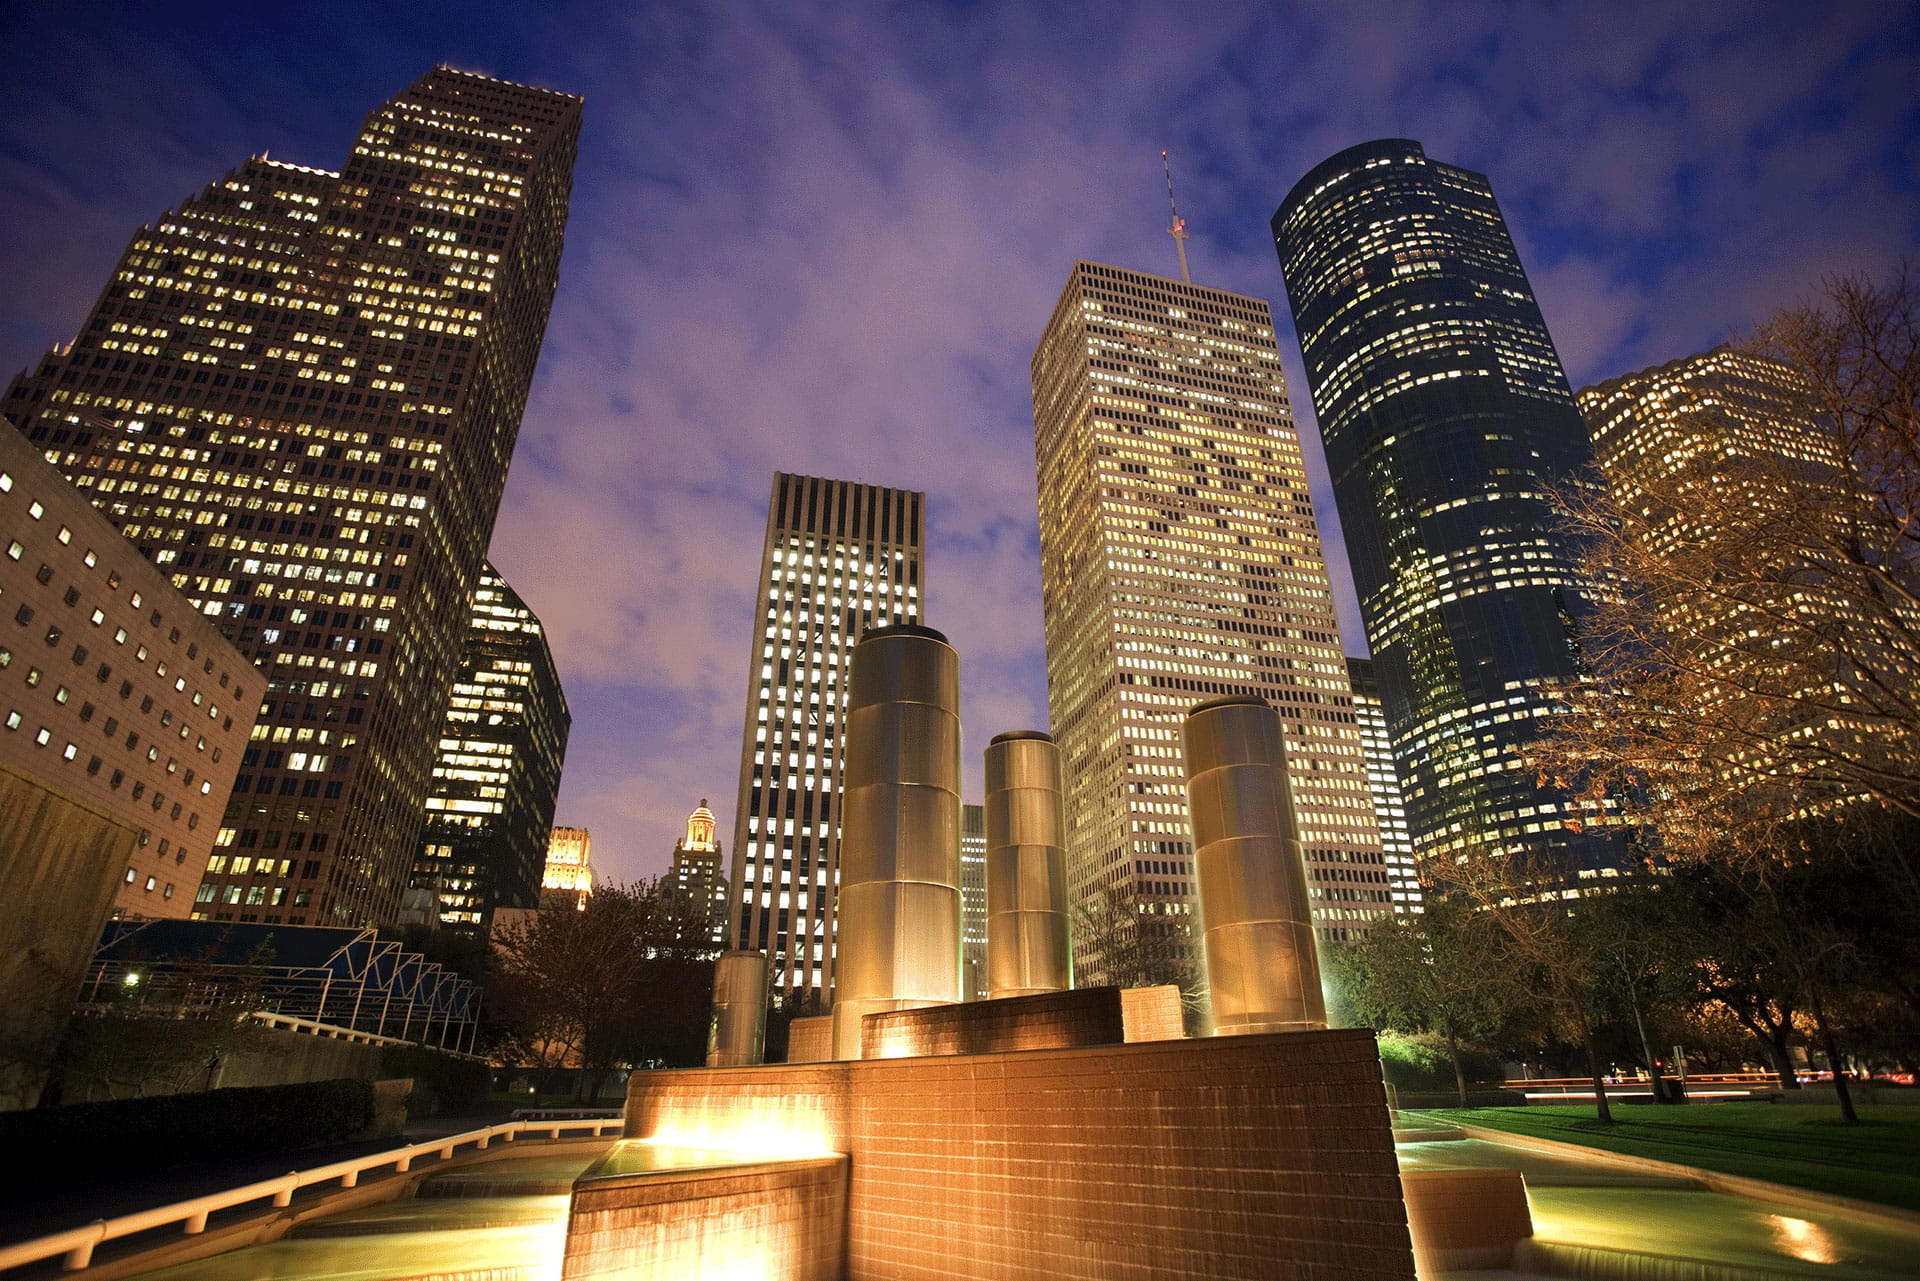 Houston Skyscrapers at night